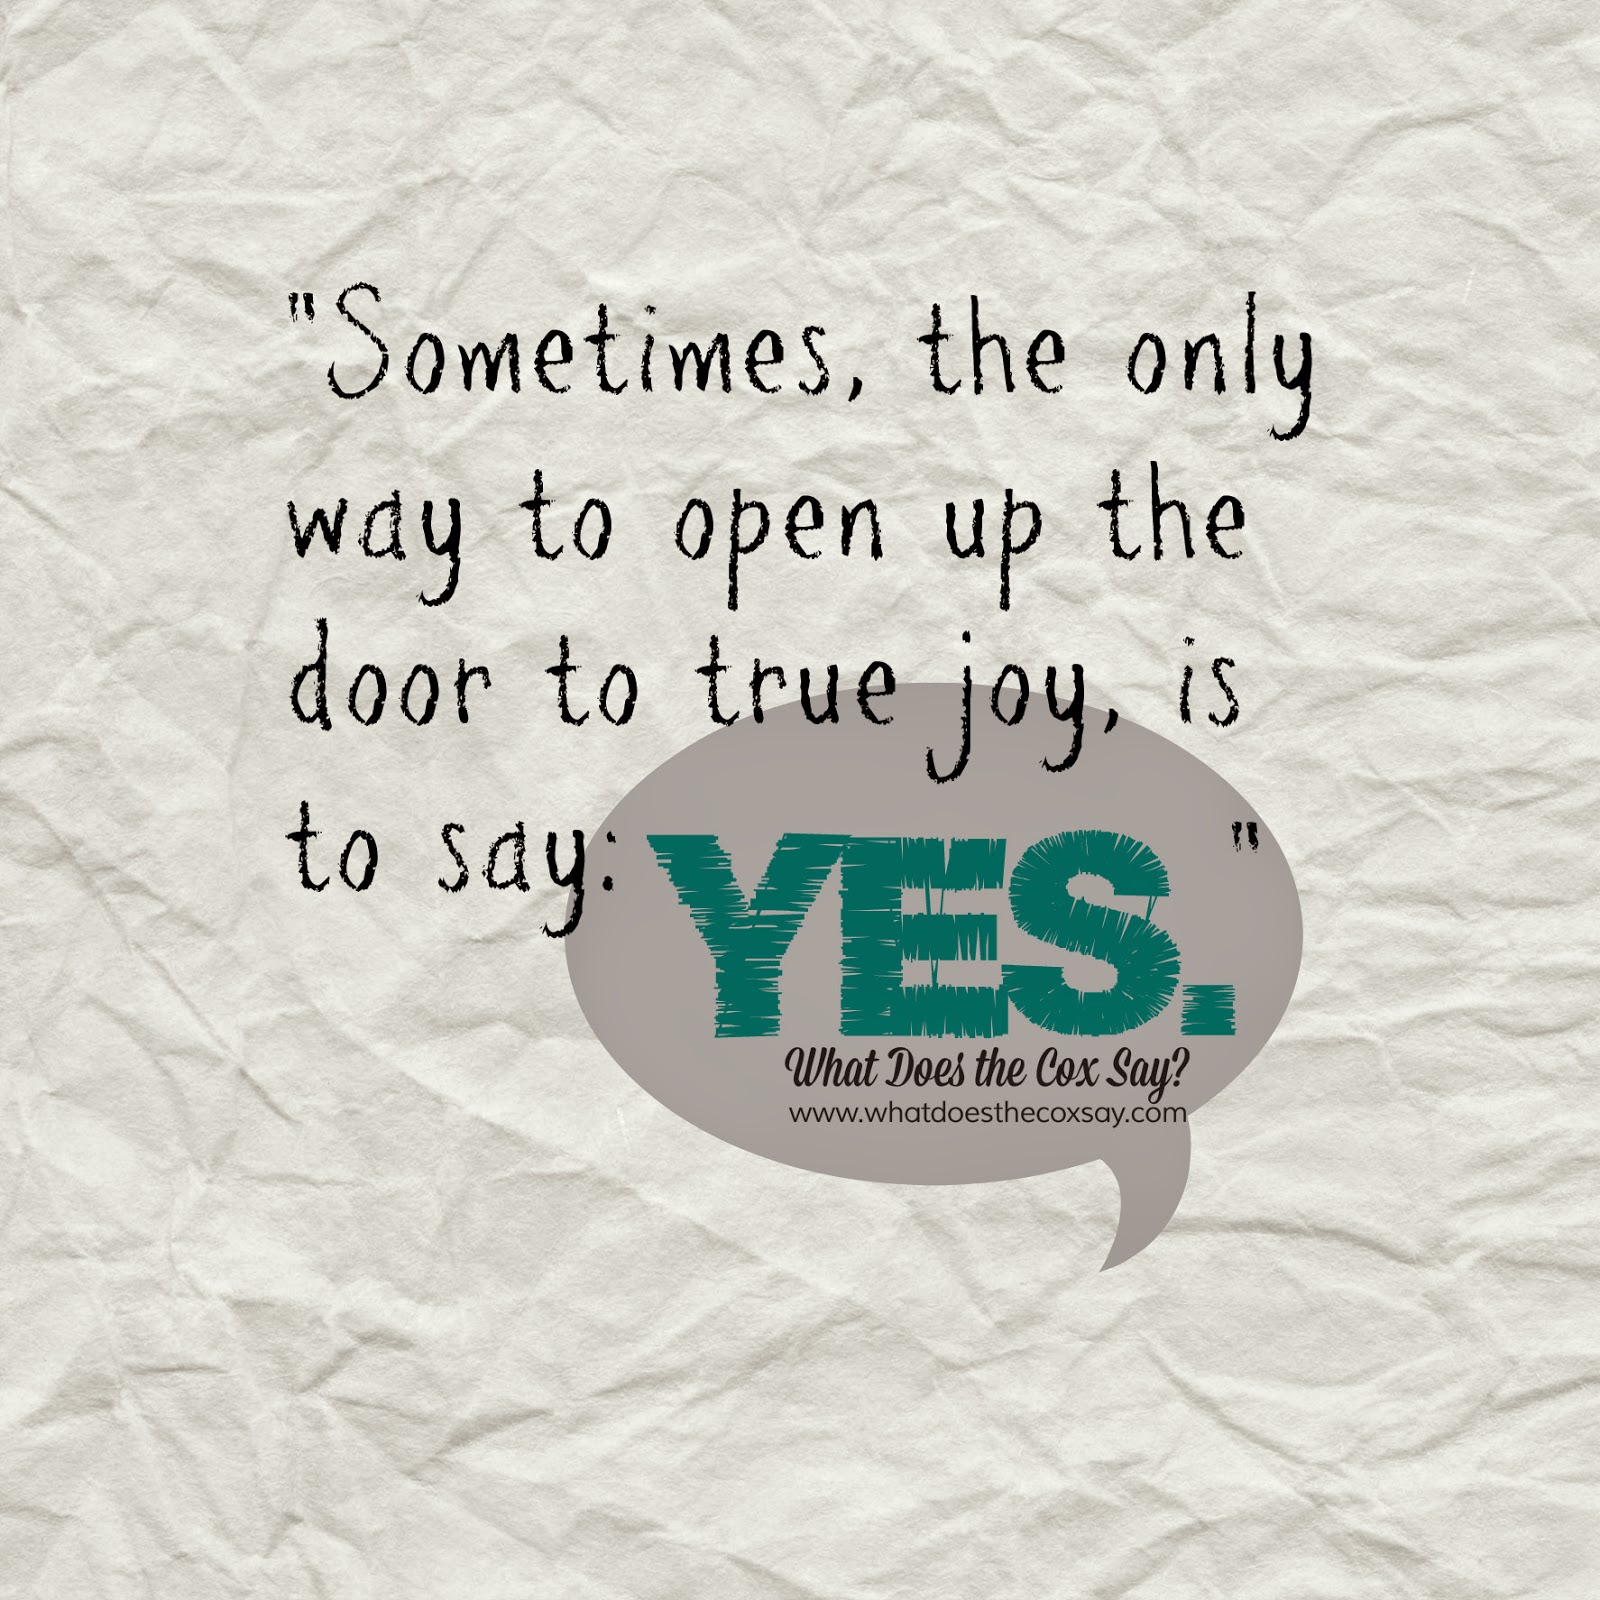 Inspirational Quote from whatdoesthecoxsay.com #quote #sayyes